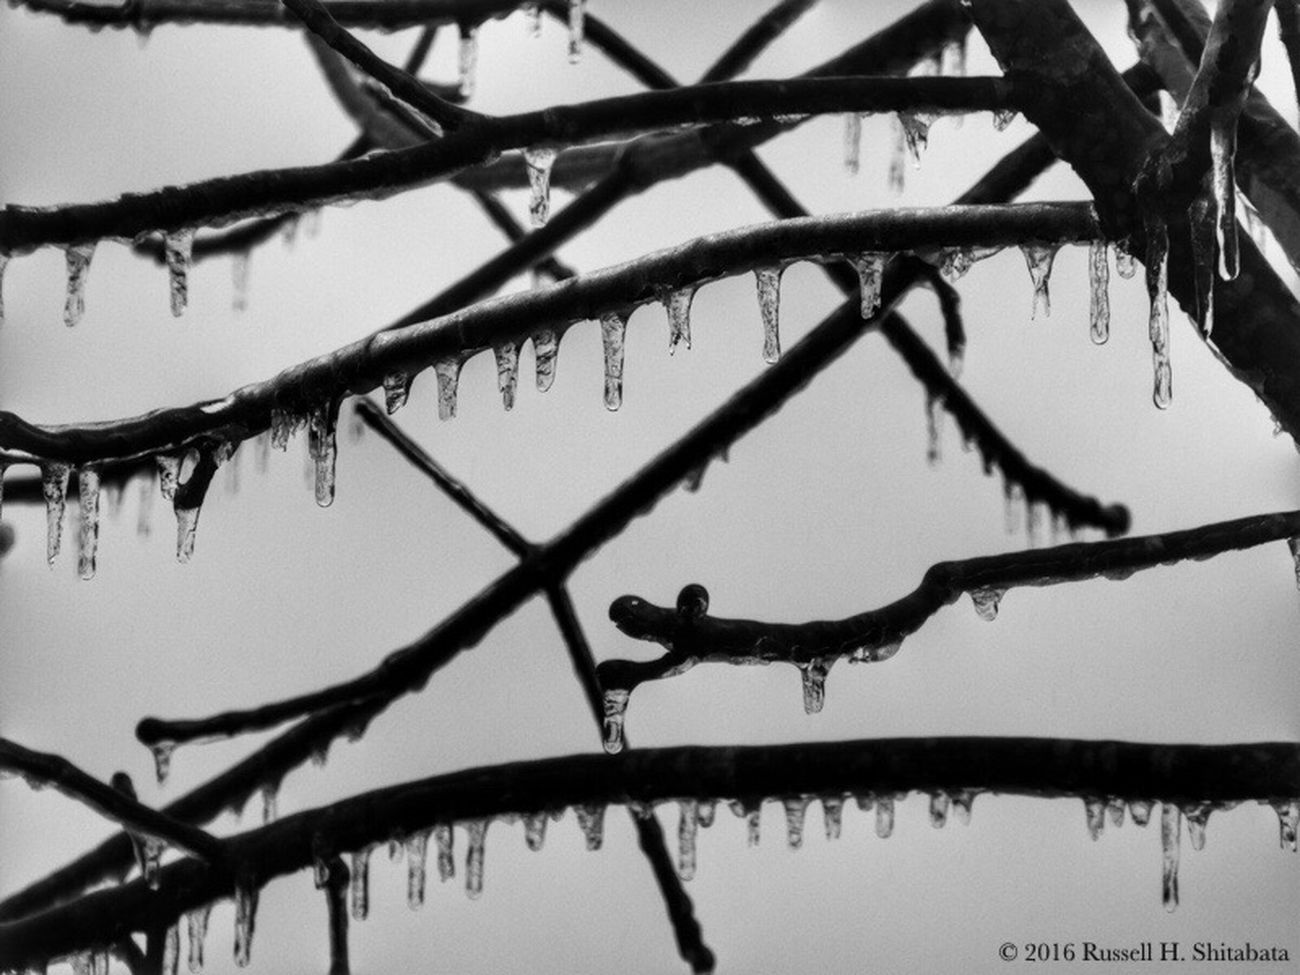 Black And White Photography Bnw_collection Bnw Blackandwhite Black And White Collection  Black And White Bnwphotography Blackandwhitephotography Black & White Monochromatic Blackandwhite Photography Bnw_captures Monochrome Photography Monochrome Black&white Light Light And Shadow Contrast Water Ice Frozen Frozen Nature Freezing Tree Icicles